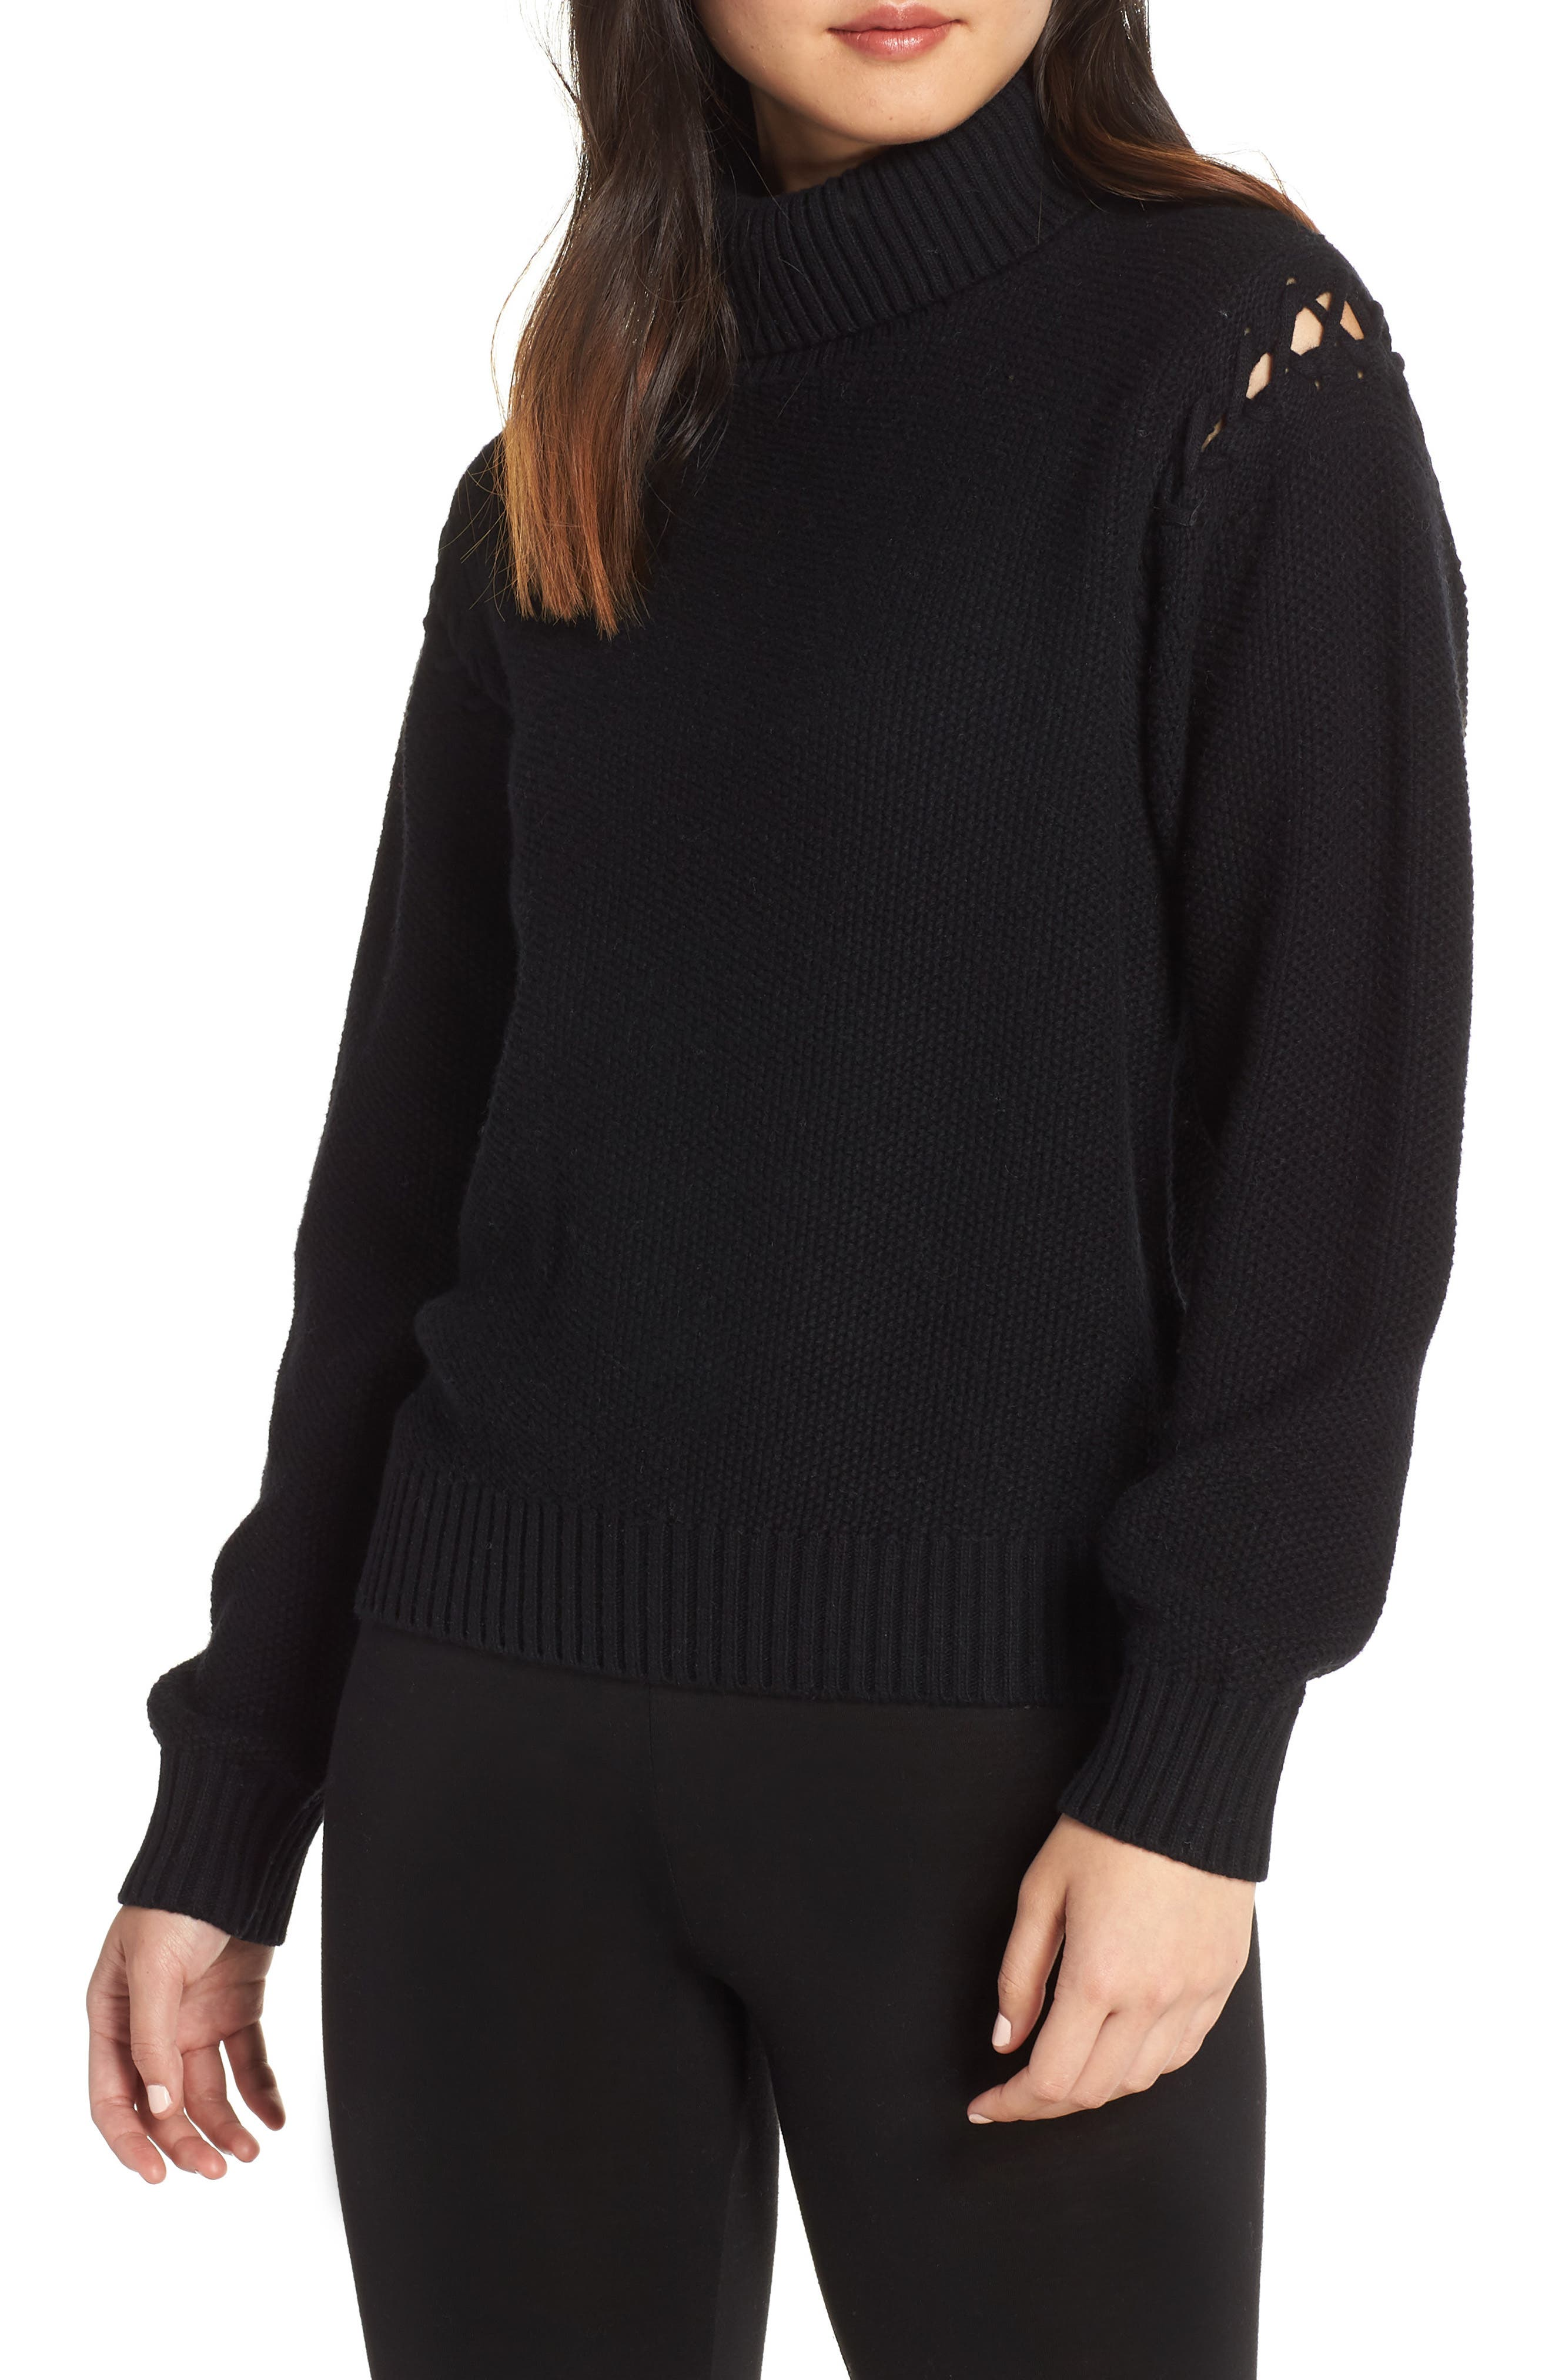 Gisele Turtleneck Sweater,                             Main thumbnail 1, color,                             BLACK